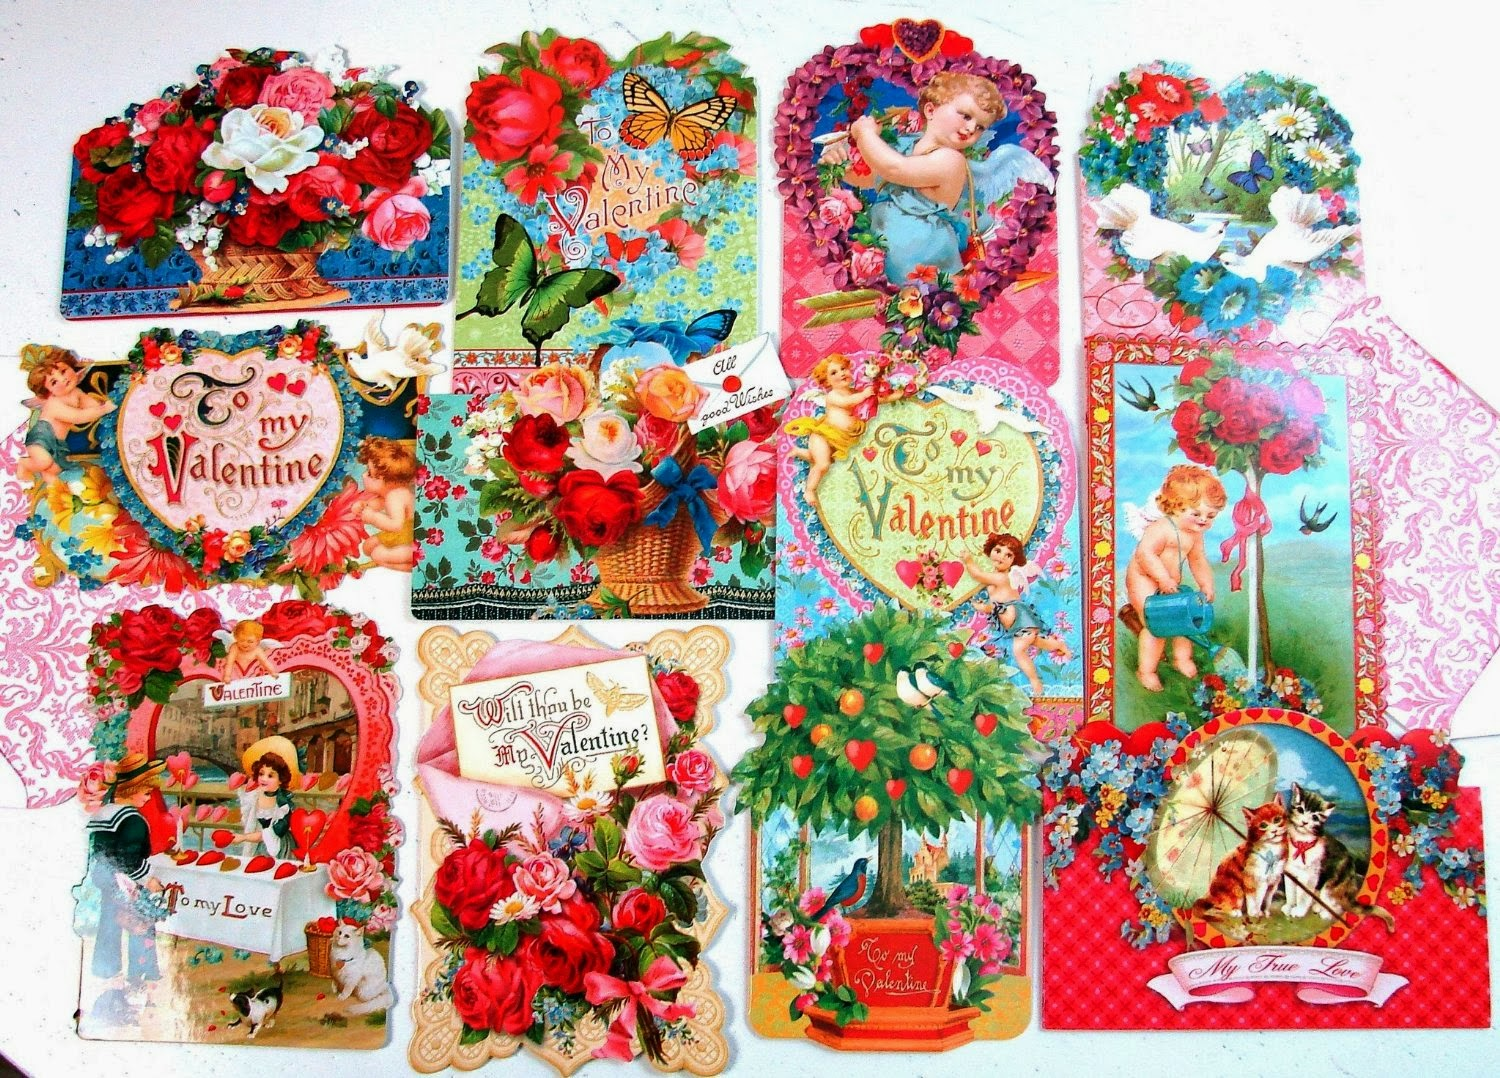 24 Valentine Card Assortment By Punch Studio